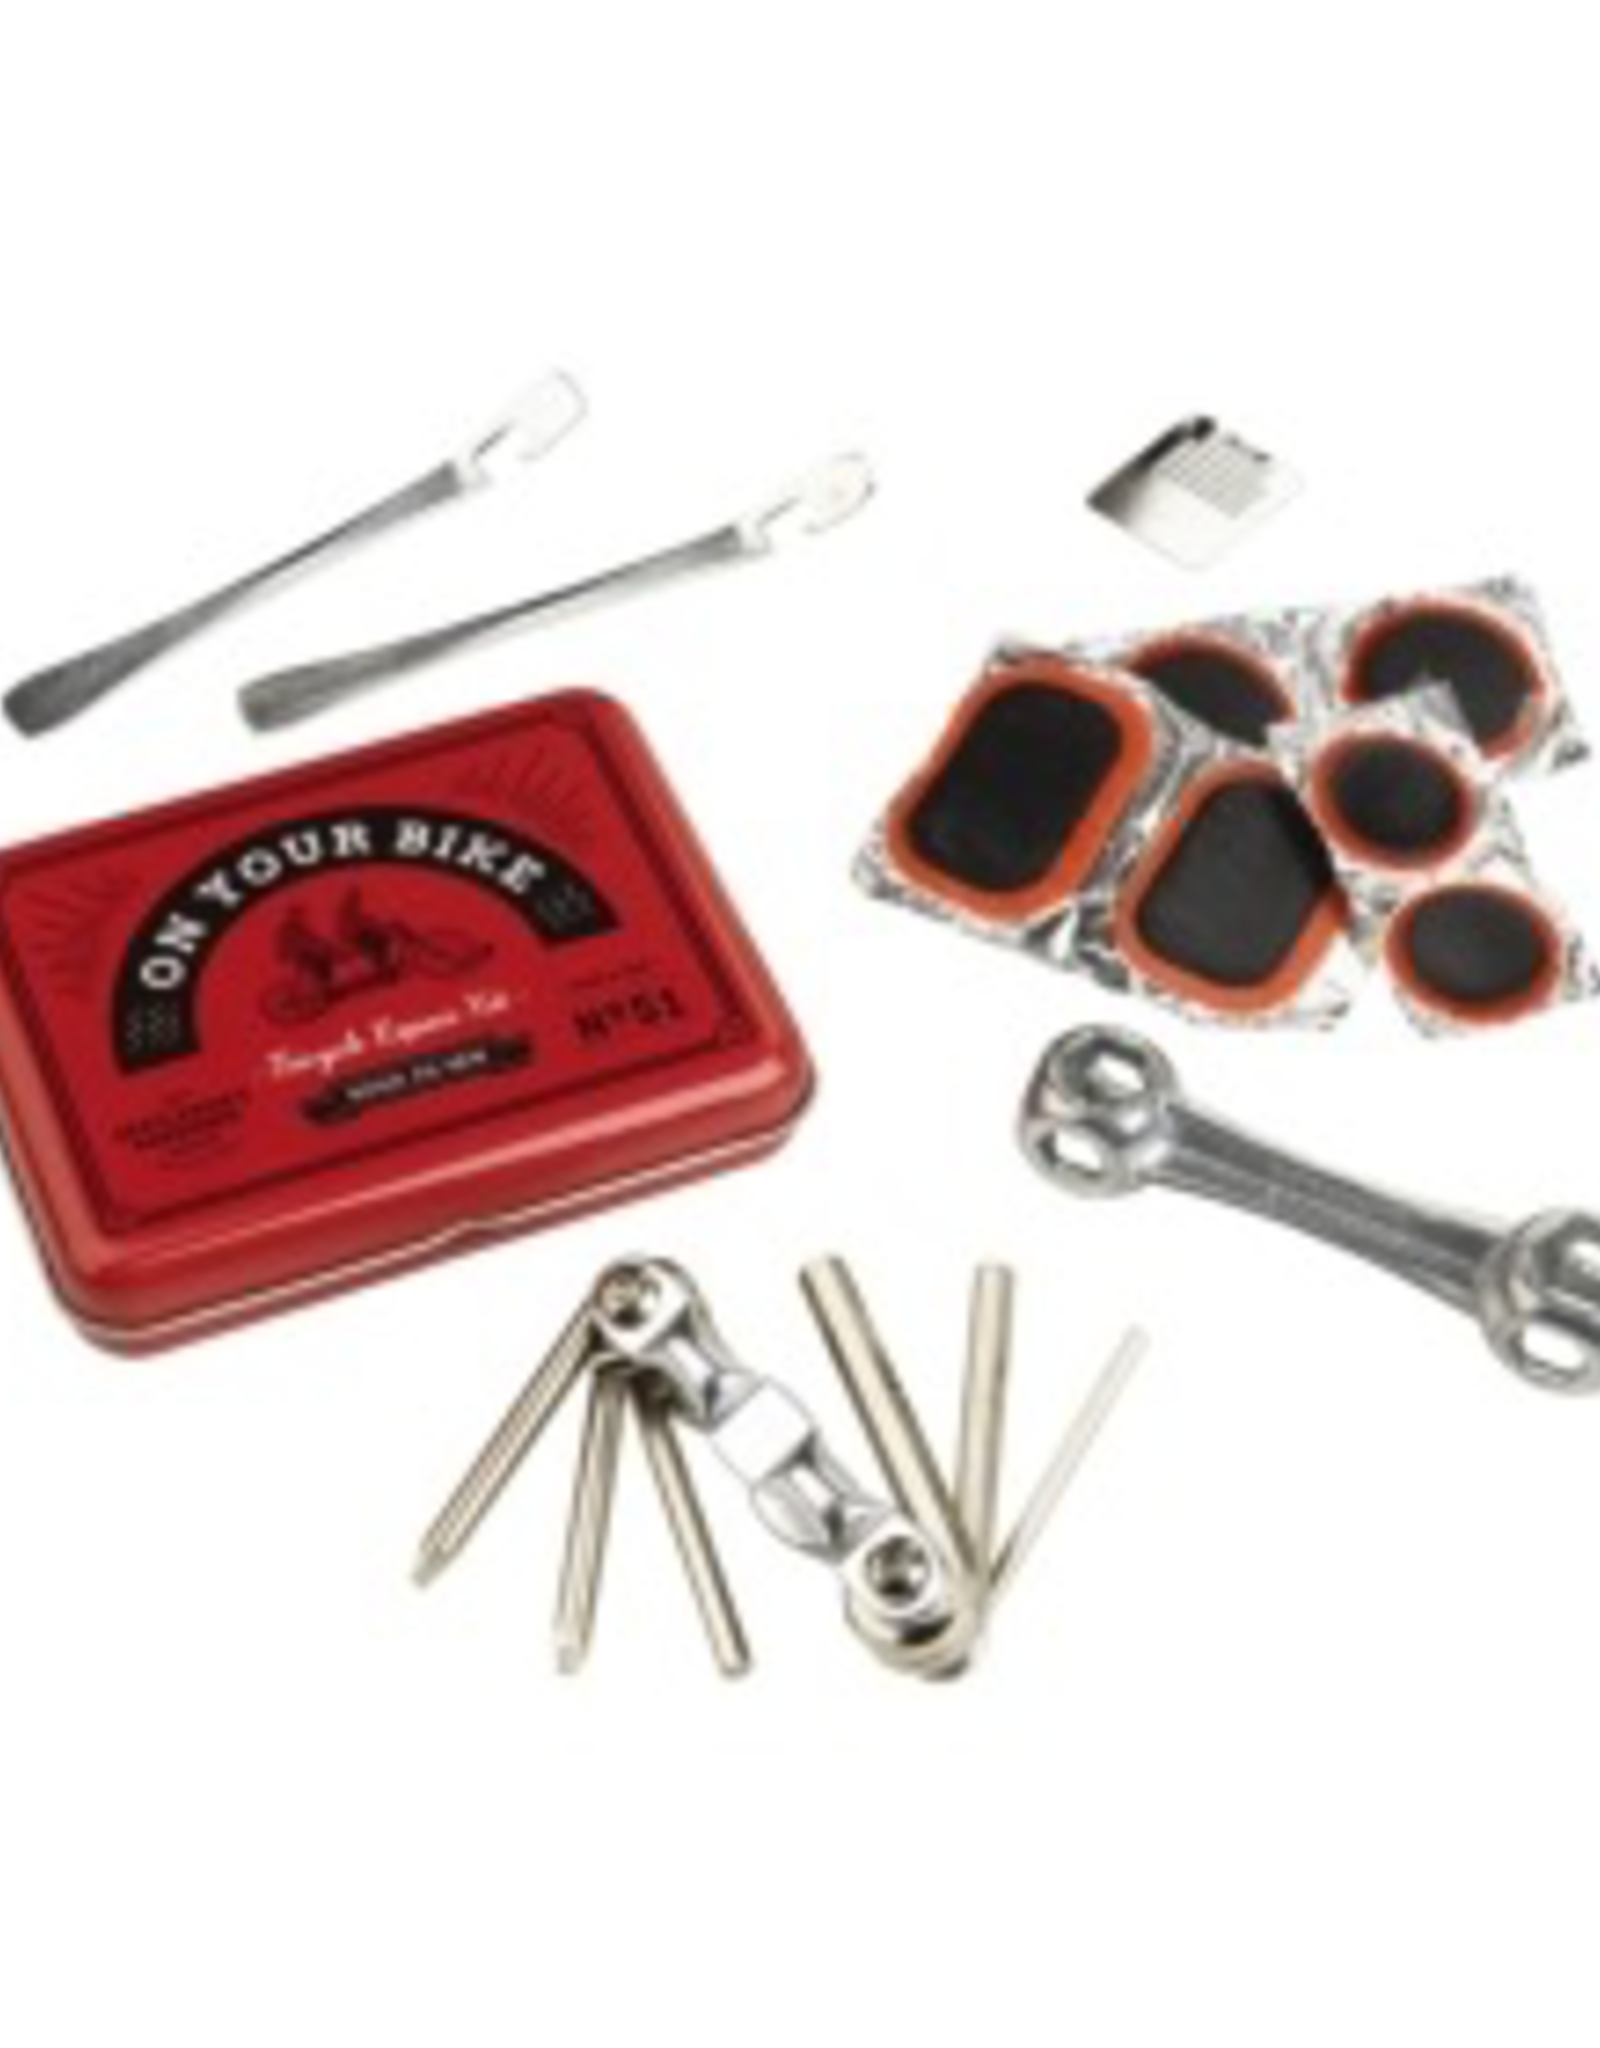 Repair Kit, Bicycle